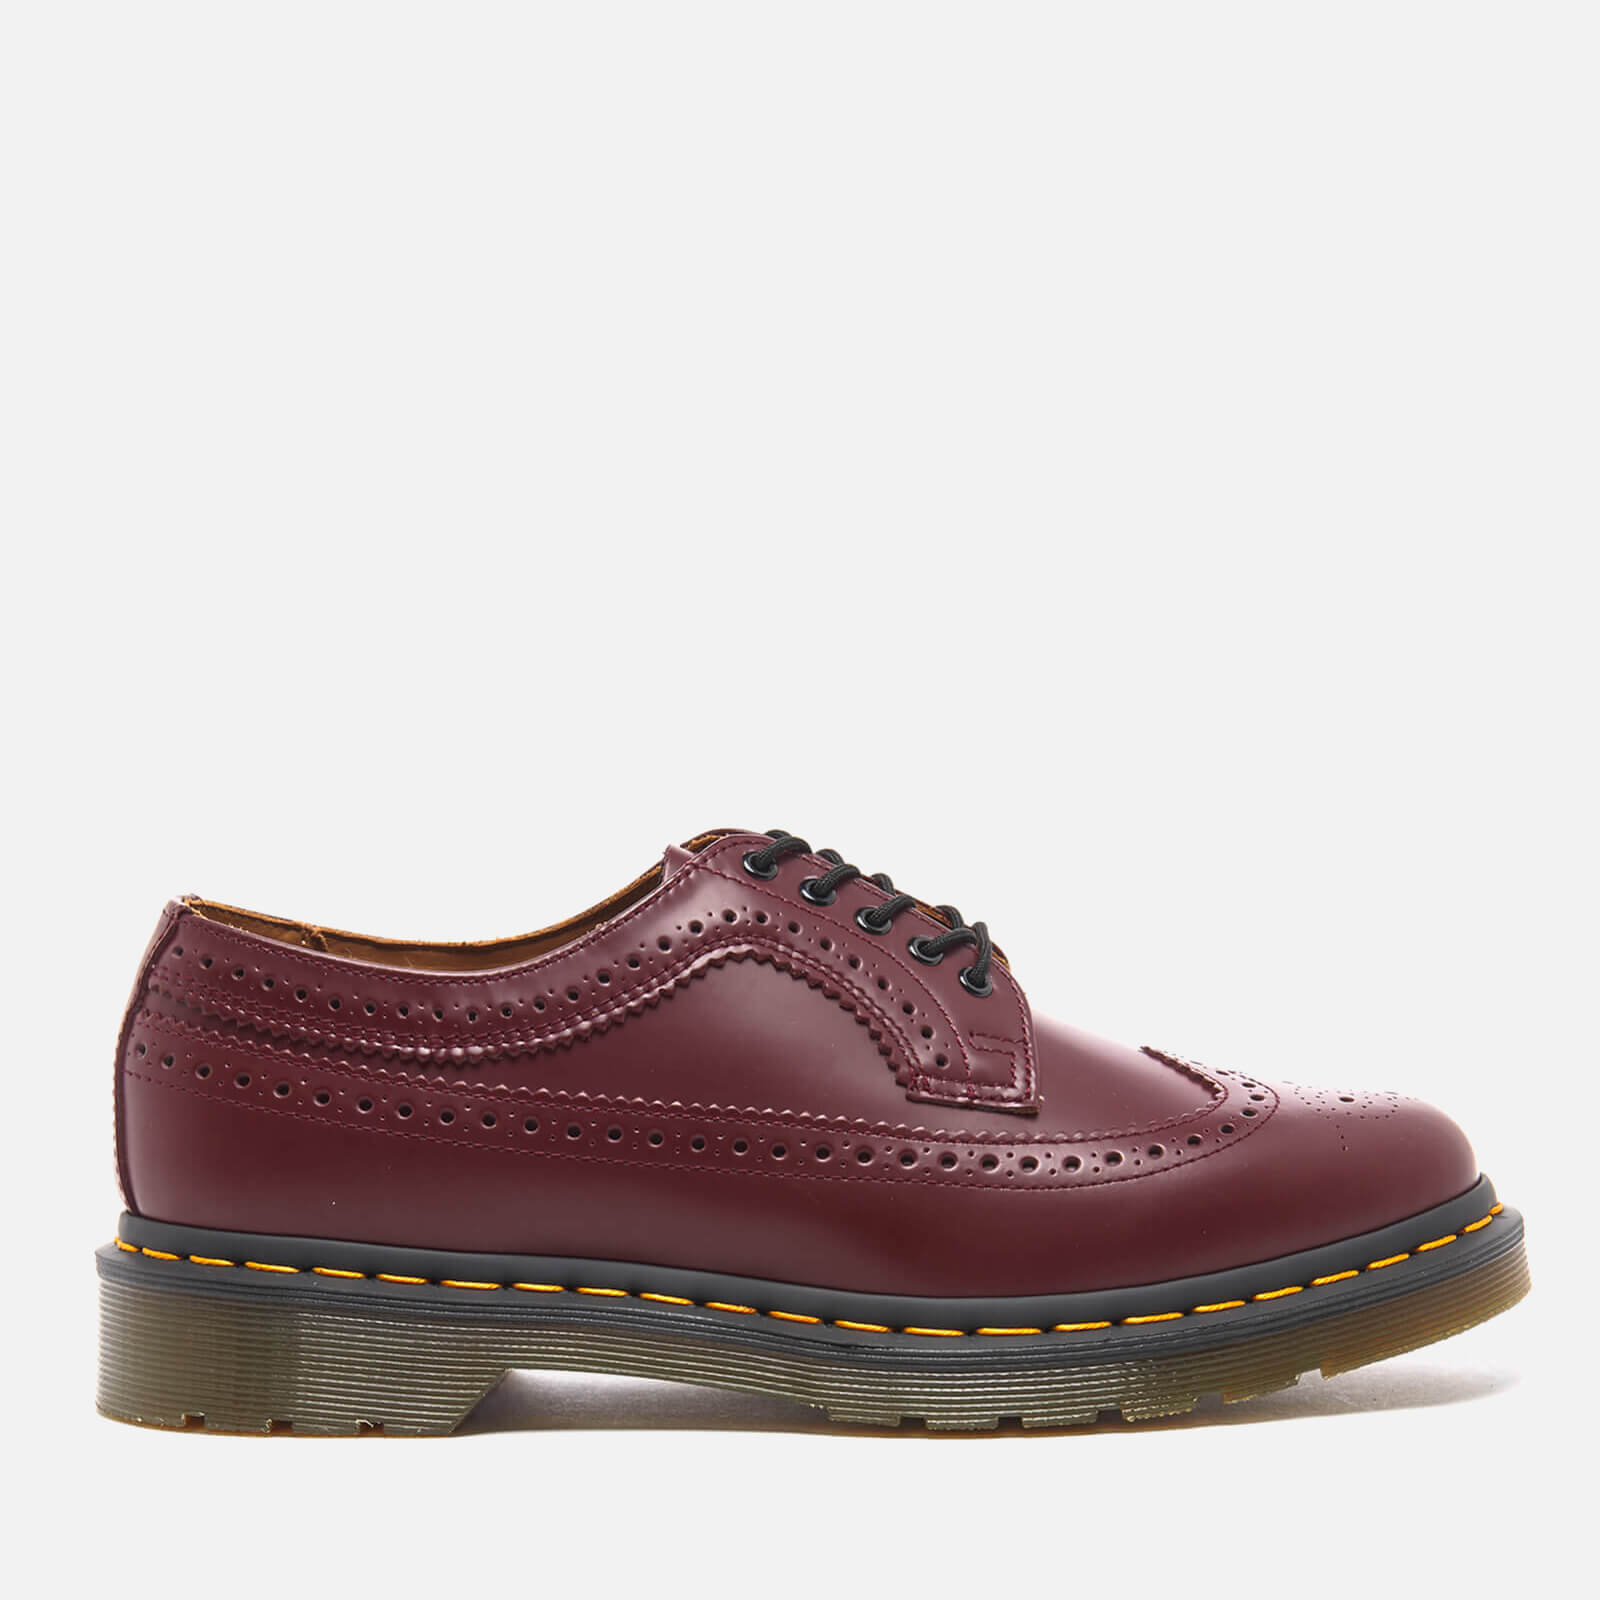 7e74a43c3c38 Dr. Martens Men's 3989 Original Archives Smooth Wingtip Brogues - Cherry  Red - Free UK Delivery over £50